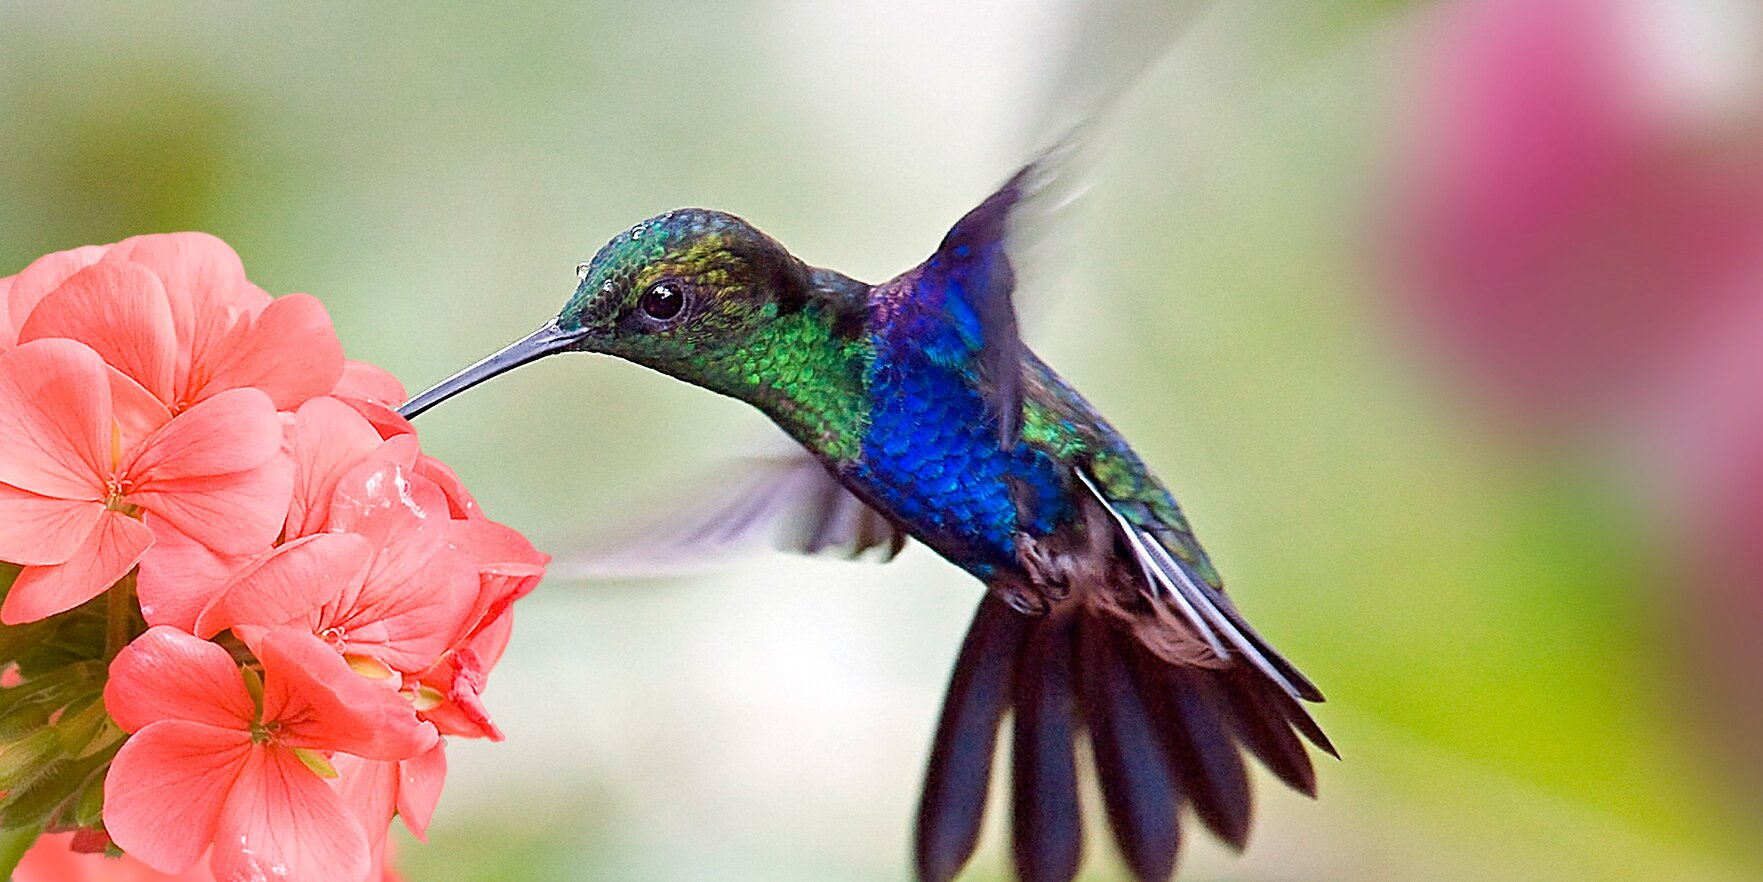 Attract Hummingbirds to Your Yard with This Easy-to-Grow Vertical Flower Garden